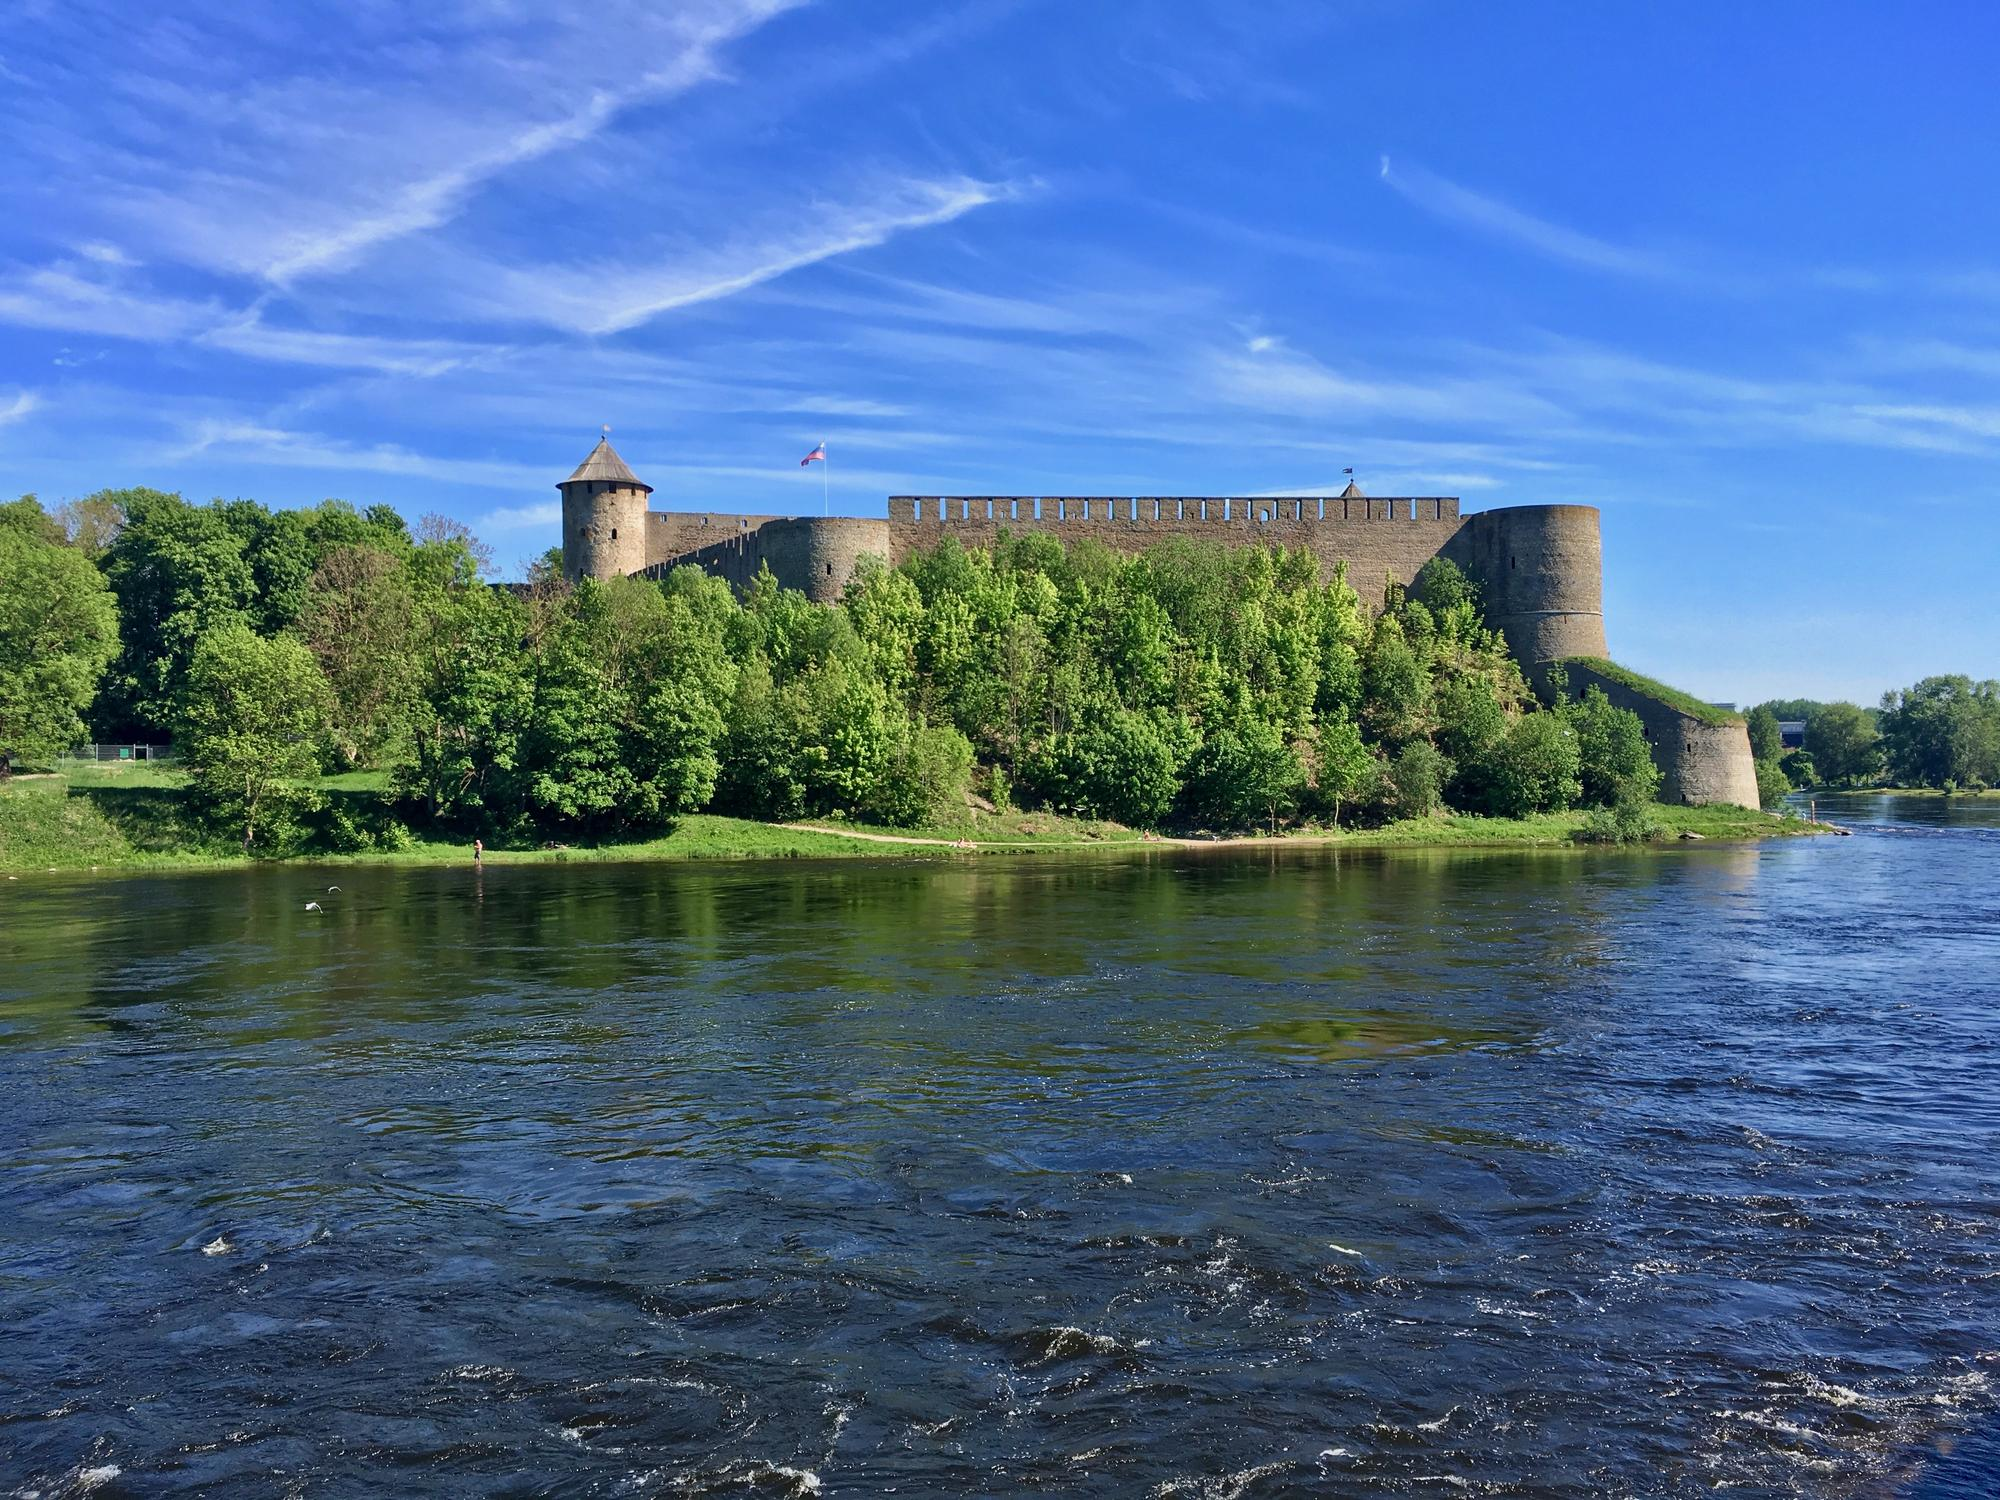 🇪🇪 Narva, Estonia, may 2018.